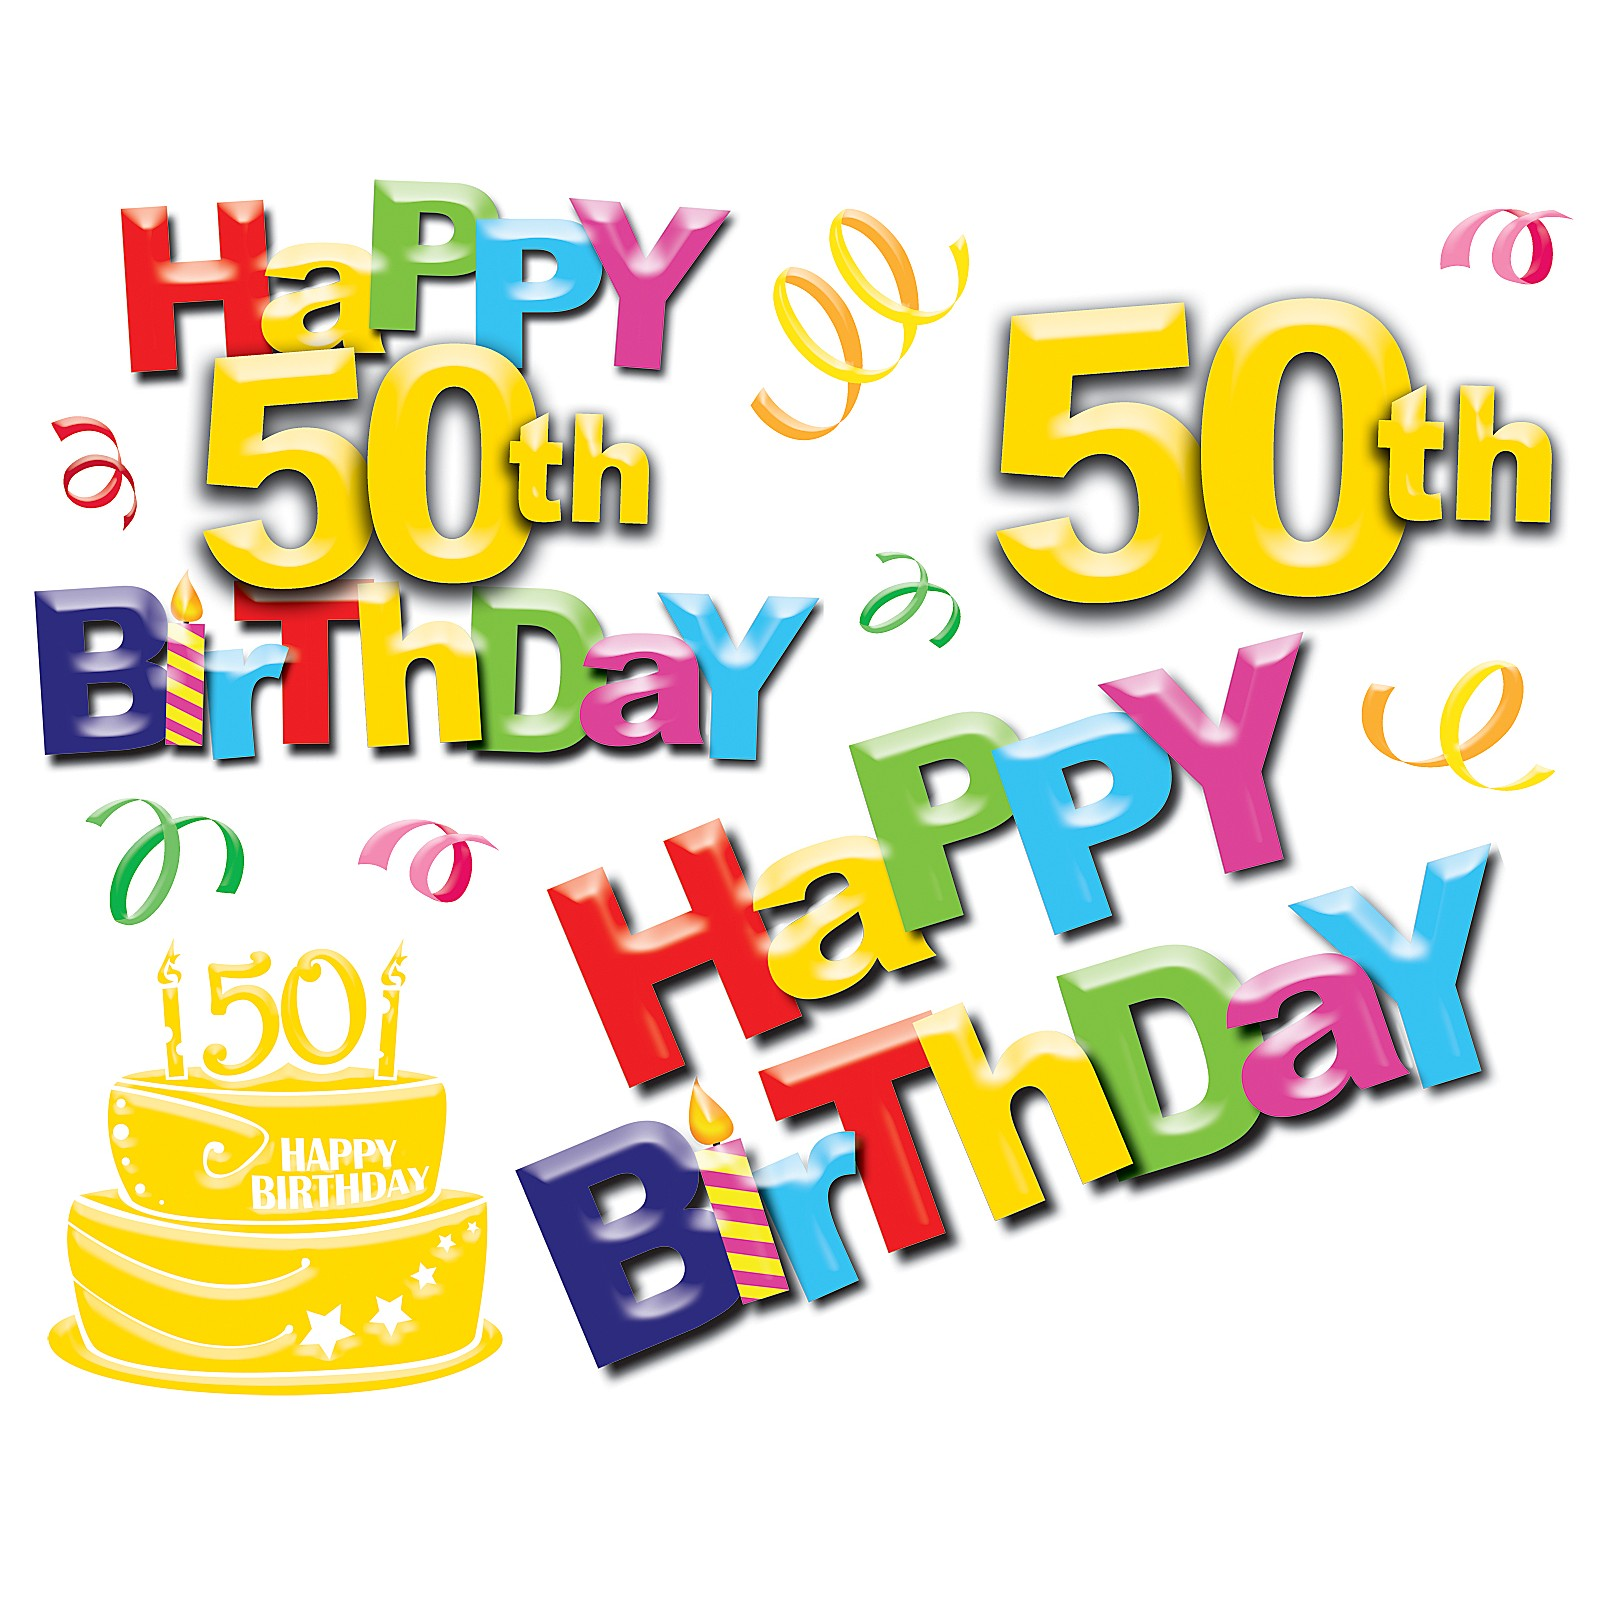 50th Birthday Clipart Clip Art Page 4 Images Cake